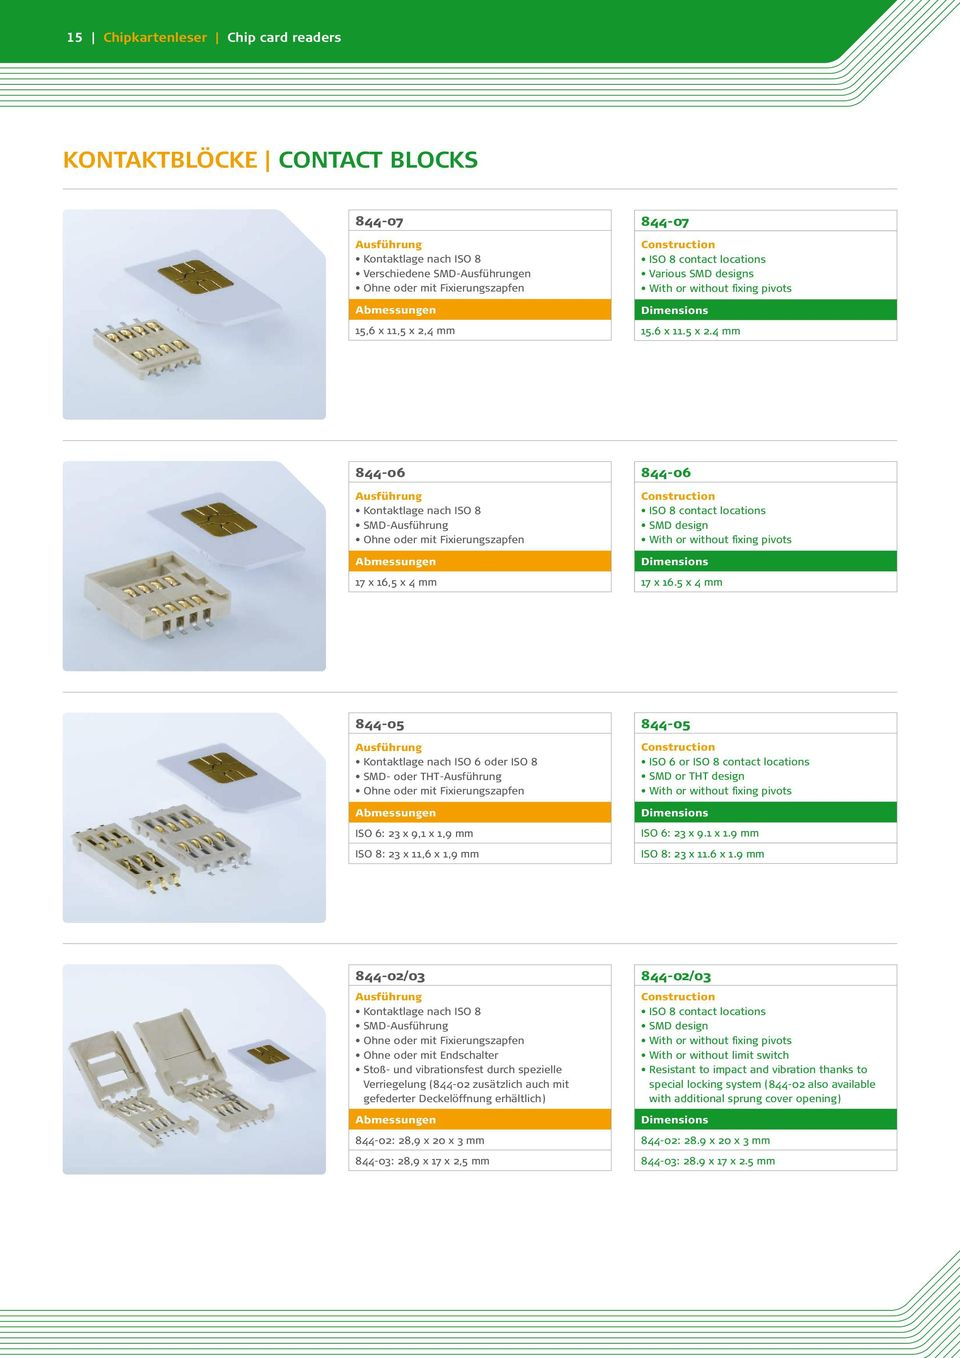 9 mm 844-05 ISO 6 or ISO 8 contact locations SMD or THT design ISO 6: 23 x 9.1 x 1.9 mm ISO 8: 23 x 11.6 x 1.